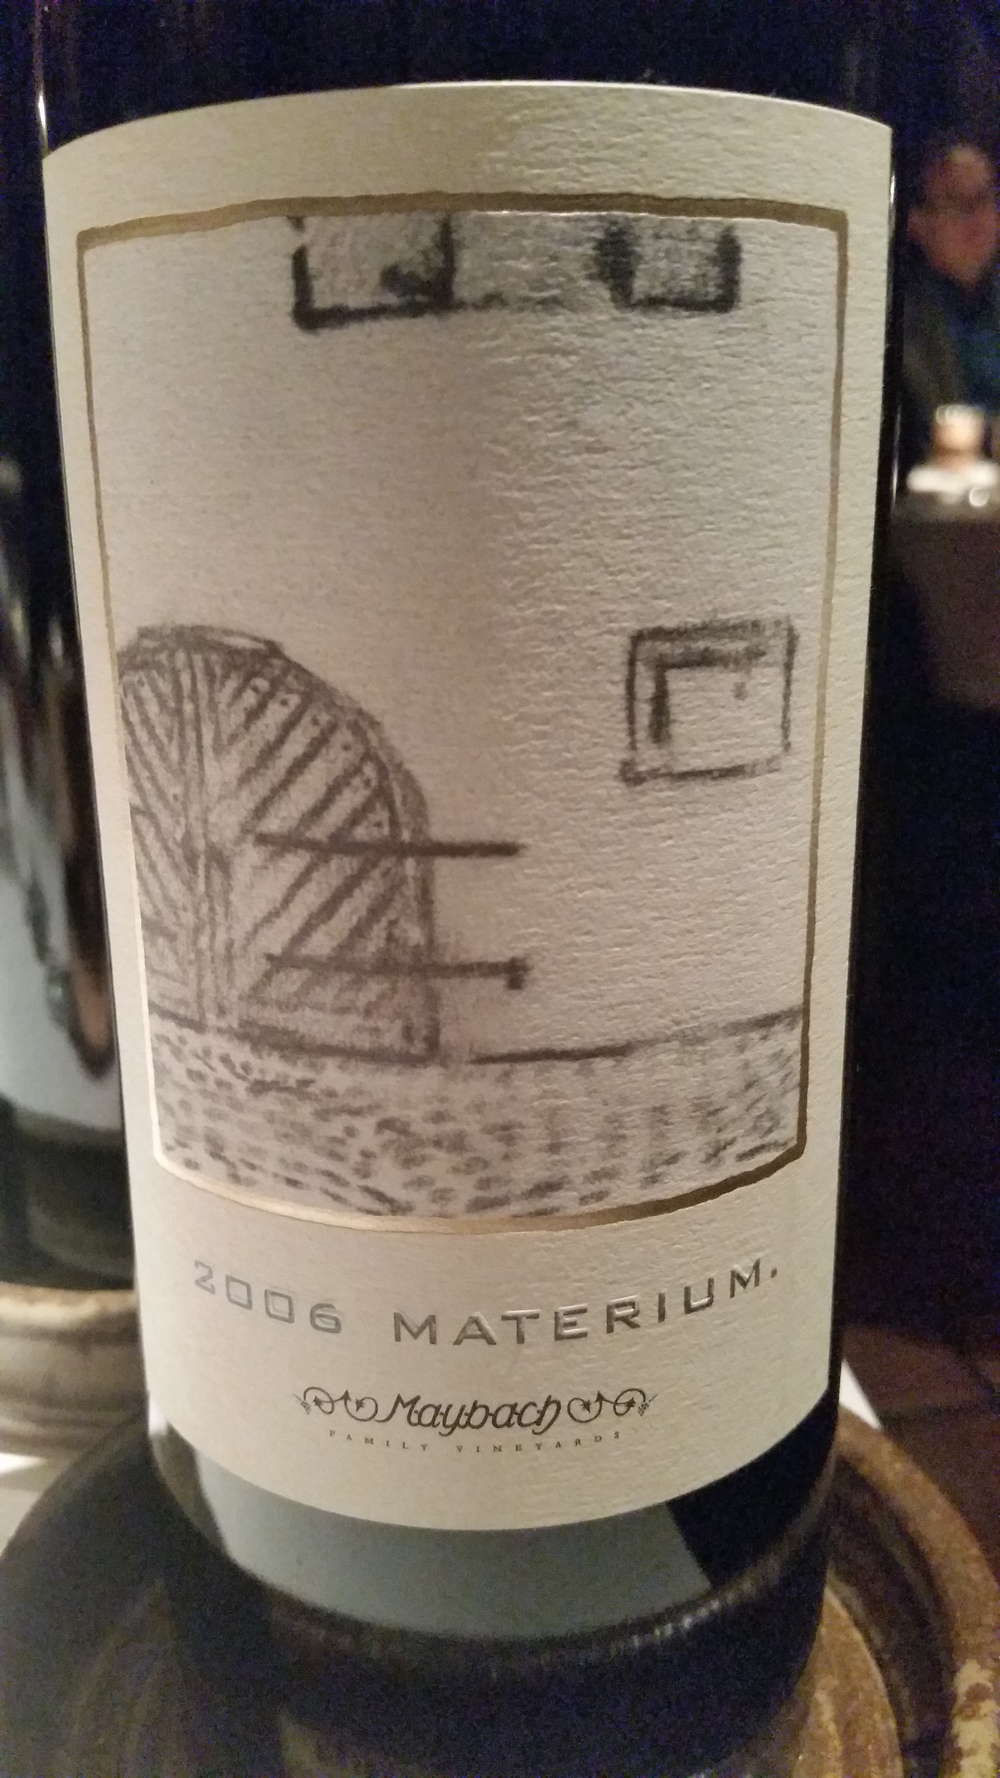 Mabach Family 06 Materium Cab.jpg